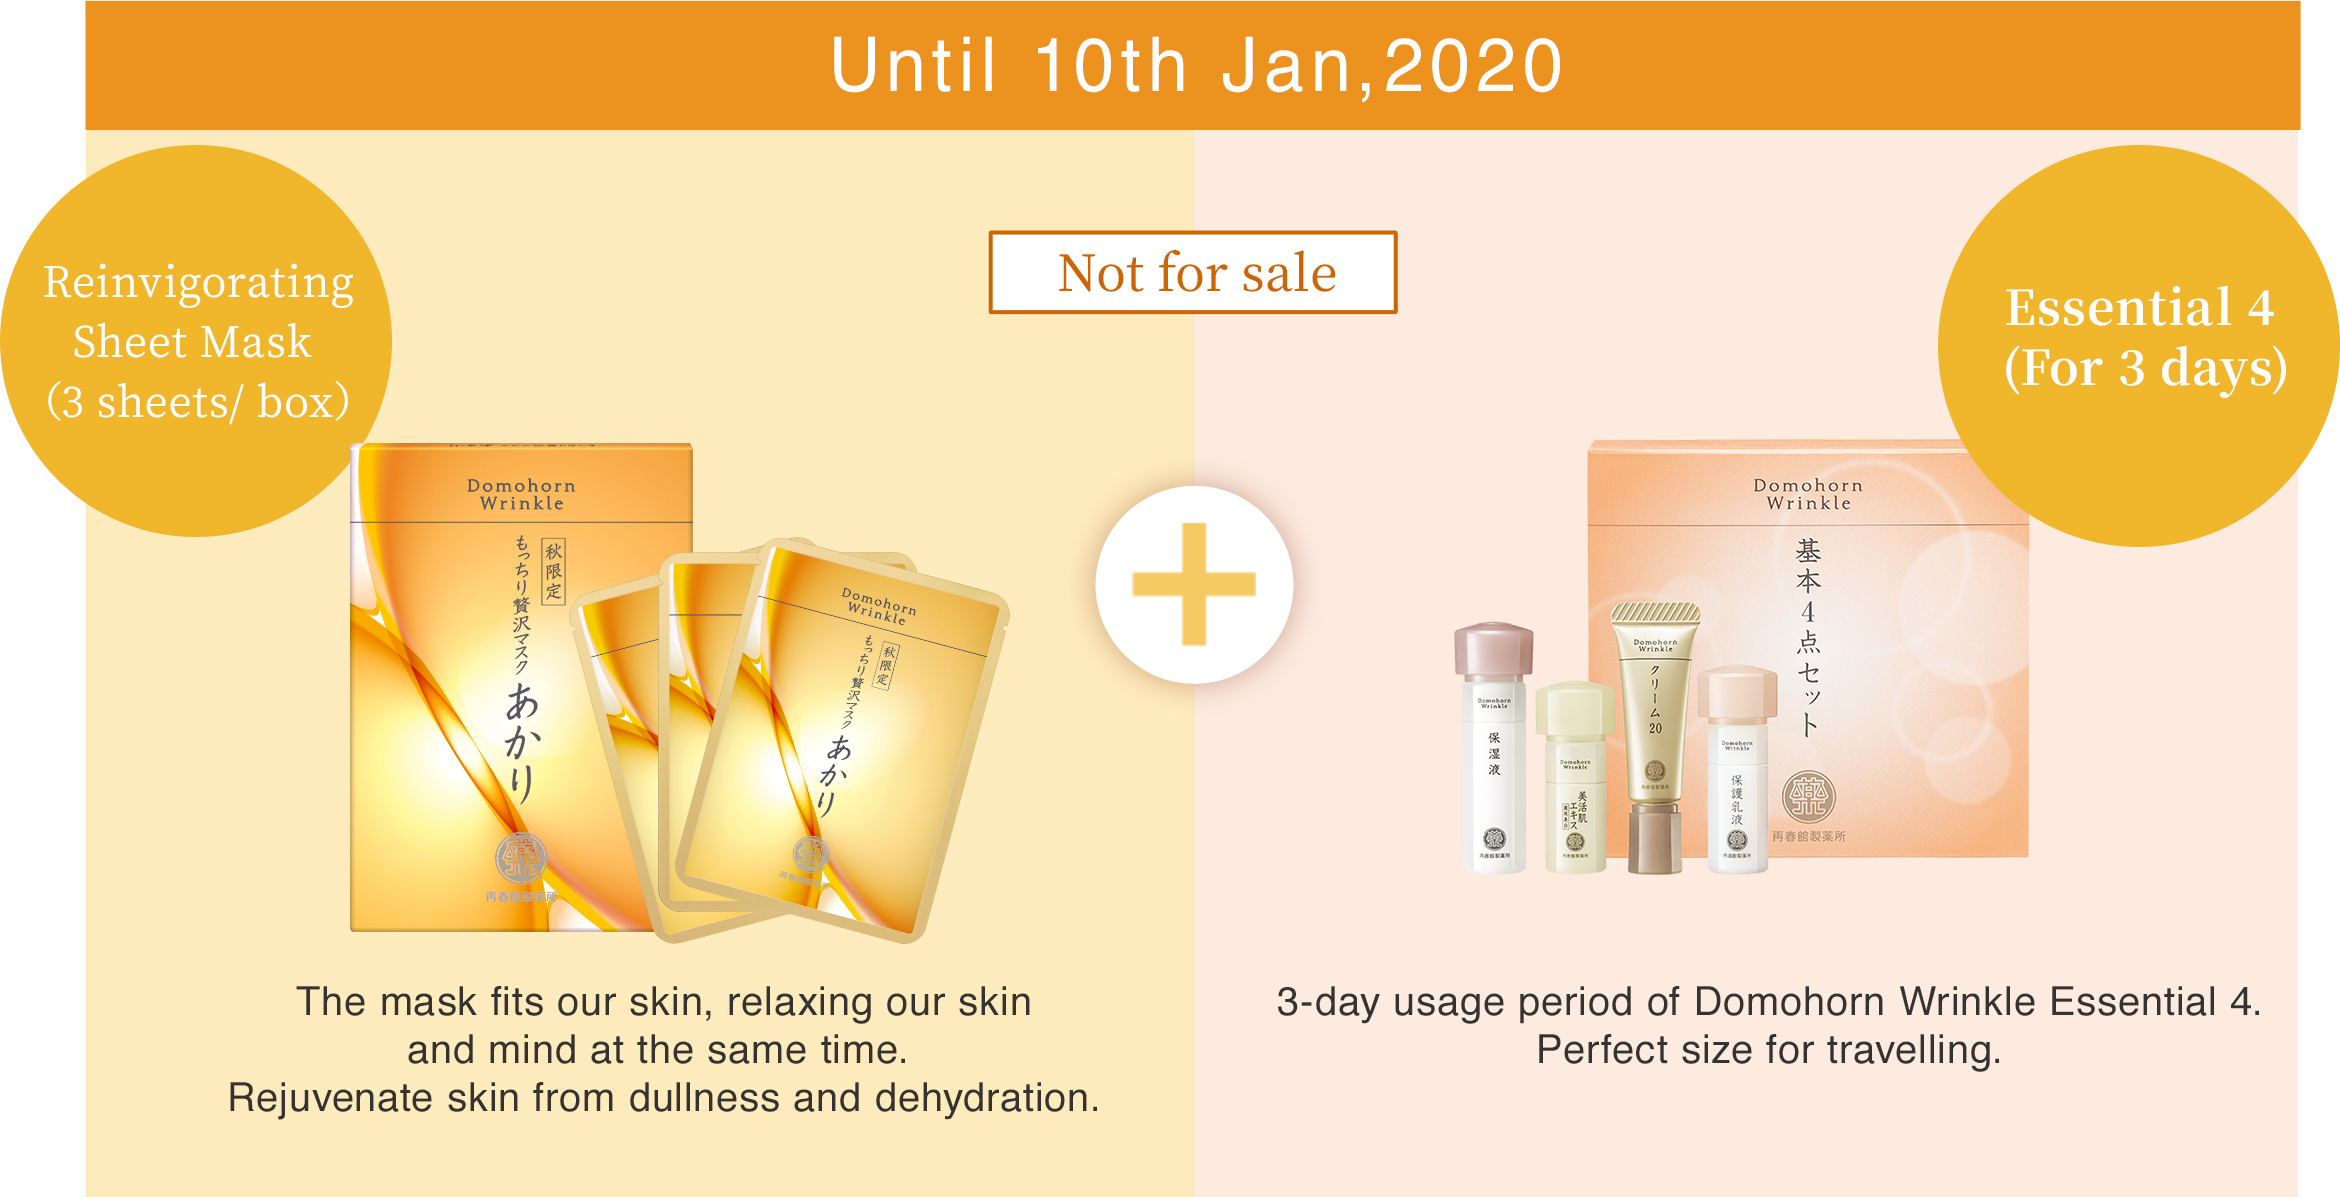 Until 10th Jan,2020 Reinvigorating Sheet Mask (3 sheets/ box)The mask fits our skin, relaxing our skin and mind at the same time. Rejuvenate skin from dullness and dehydration. Essential 4 (For 3 days) 3-day usage period of Domohorn Wrinkle Essential 4. Perfect size for travelling. Not for sale